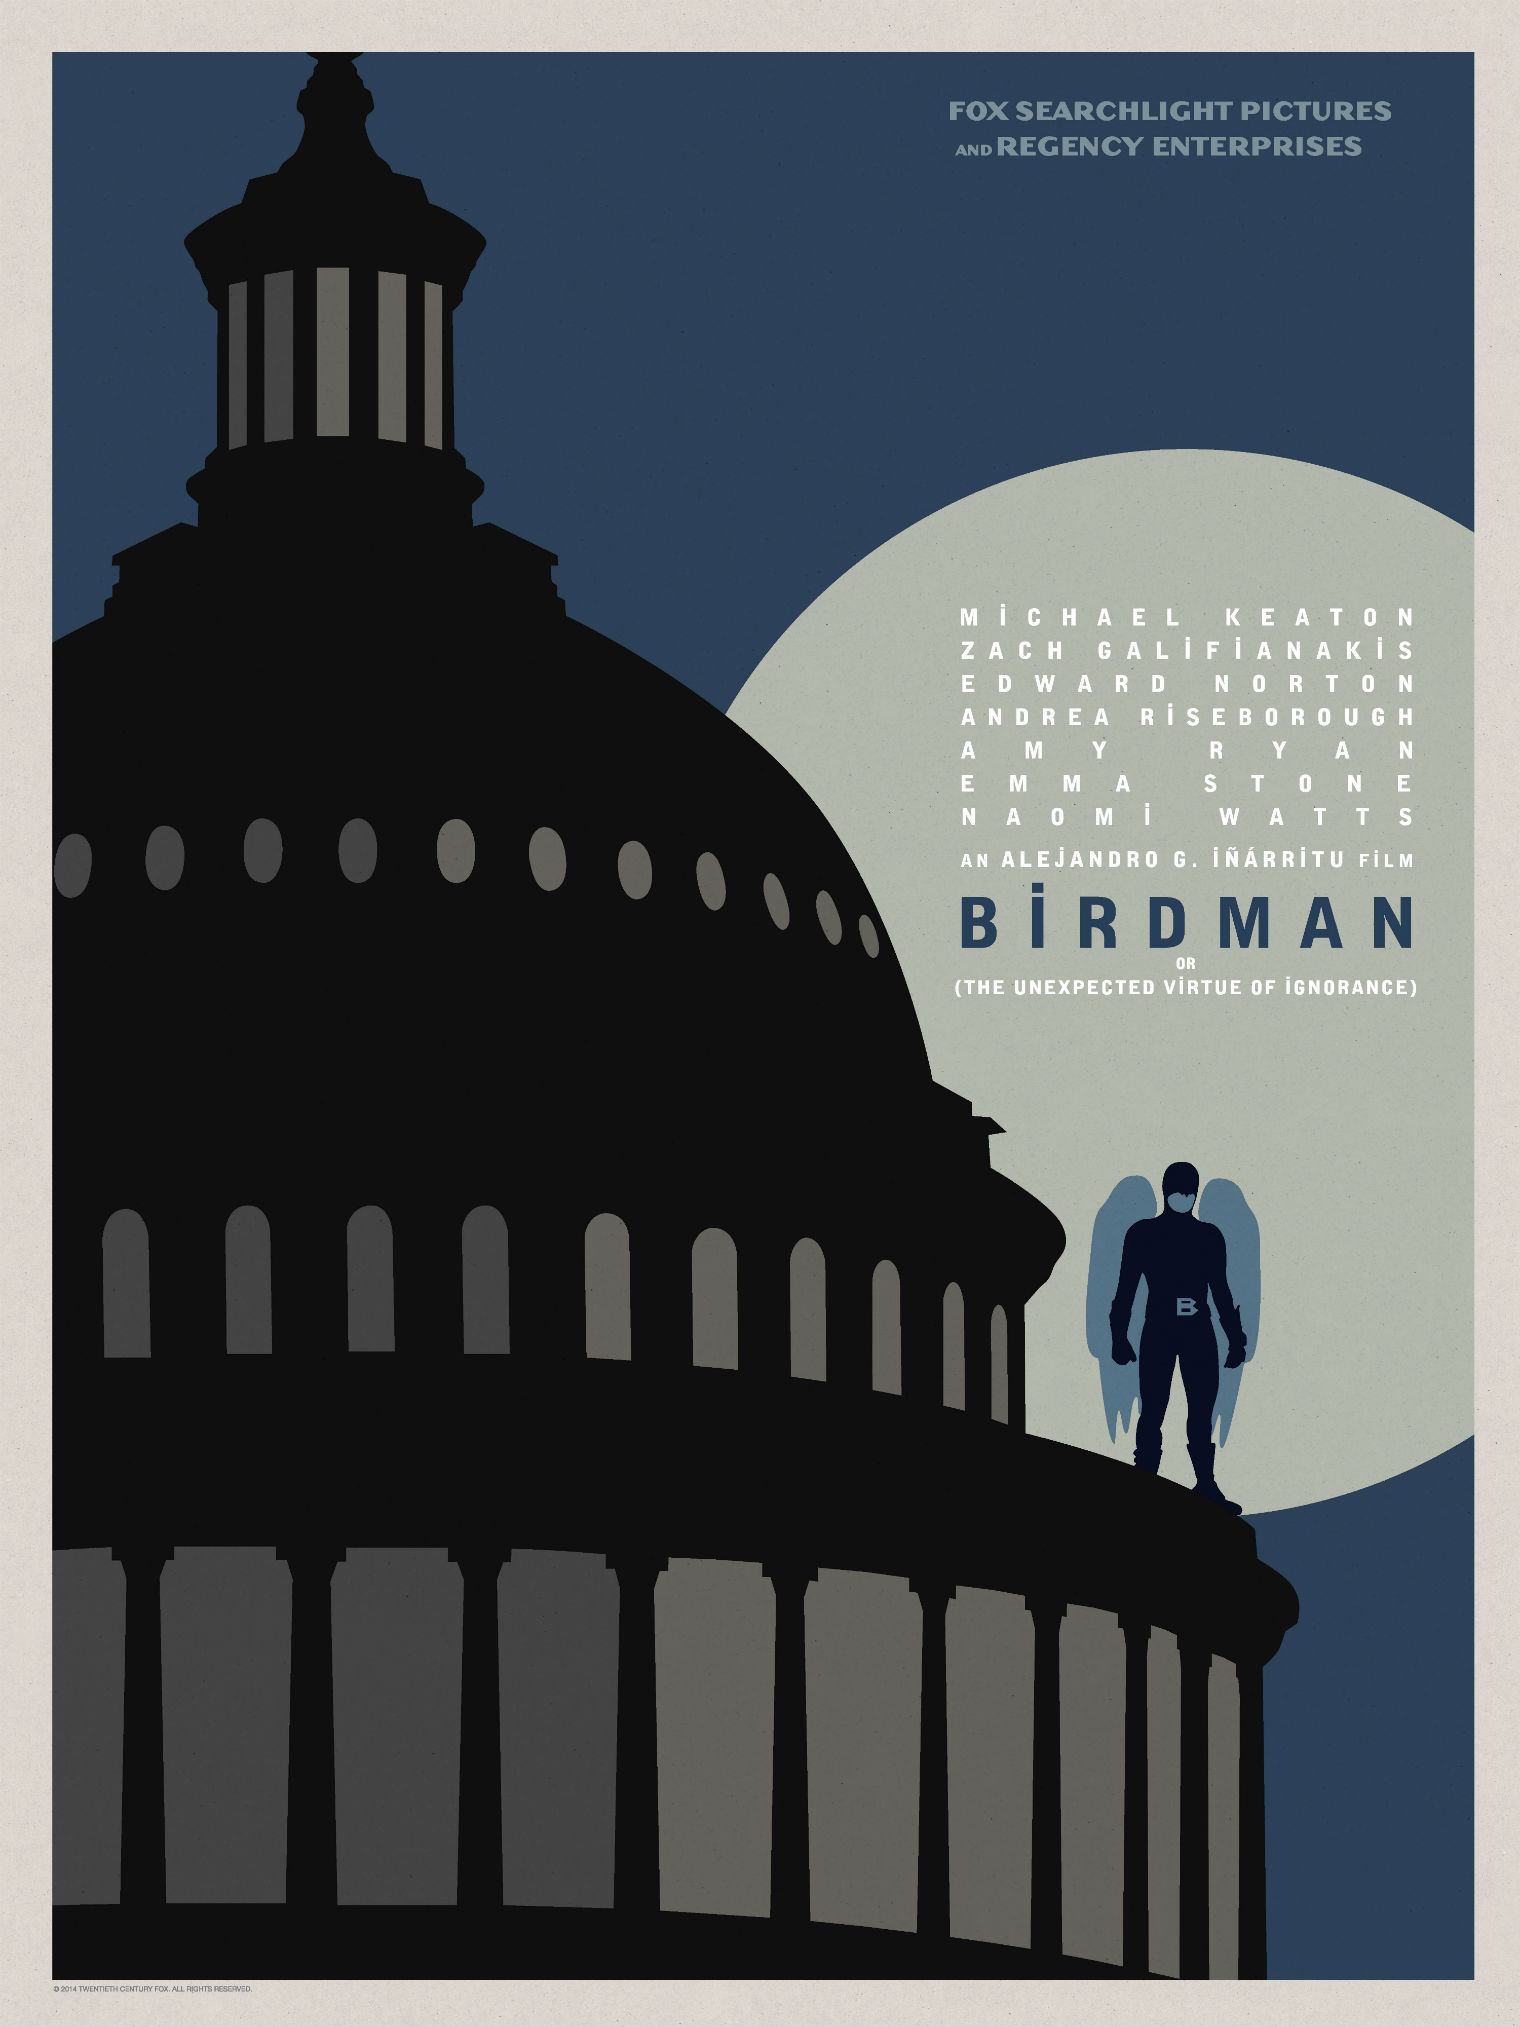 Birdman-Official Poster Minimalist XLG-13OUTUBRO2014-10